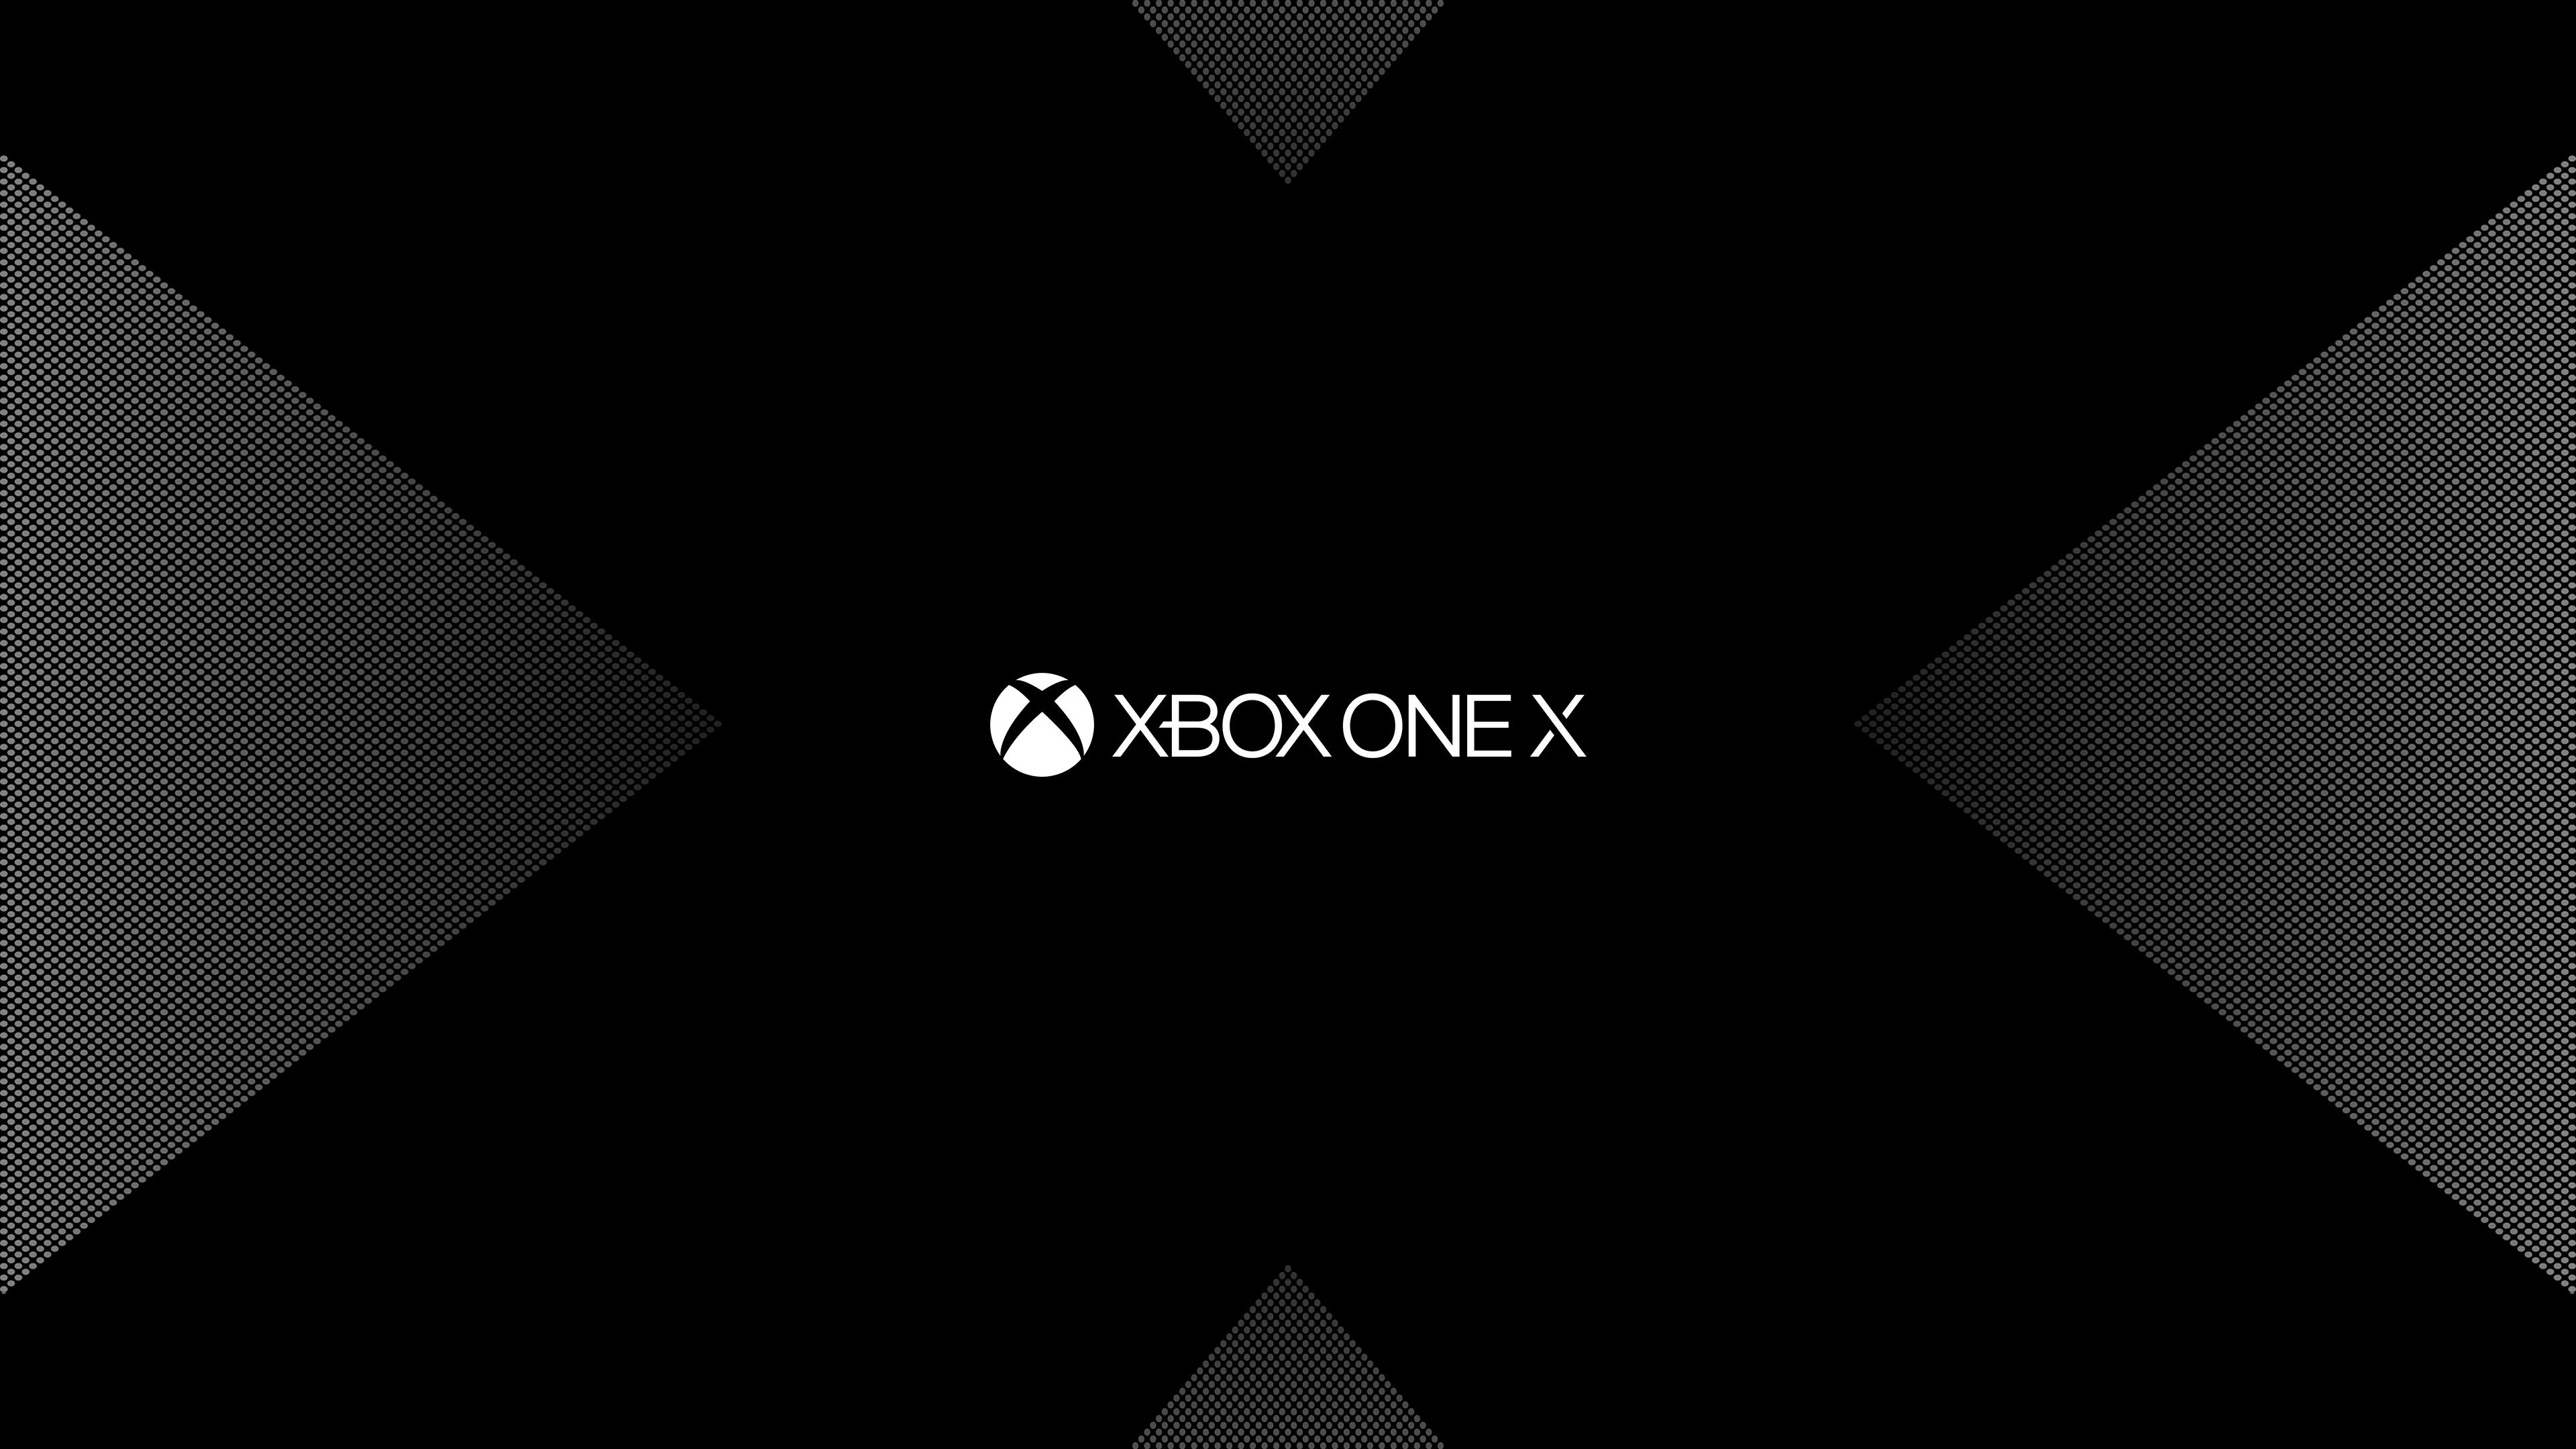 Xbox One 4k Wallpapers Top Free Xbox One 4k Backgrounds